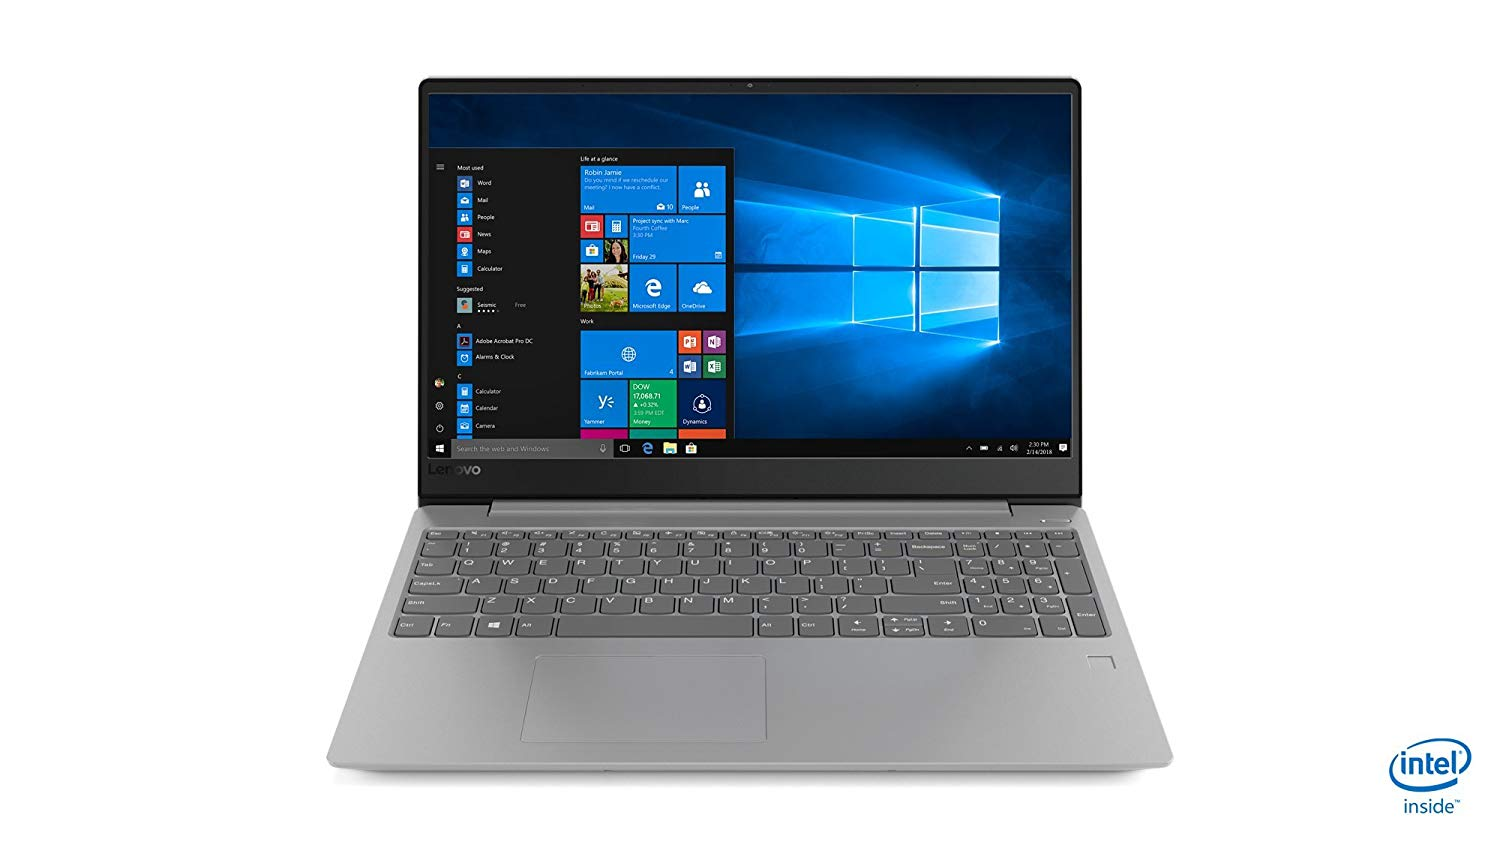 Lenovo Ideapad 330S-15IKB 81F500BXIN 15.6-inch Full HD Laptop (8th Gen I5-8250U/8GB DDR4/1TB HDD/Windows 10 Home/Office Home & Student 2016/4GB AMD Graphics), Platinum Grey